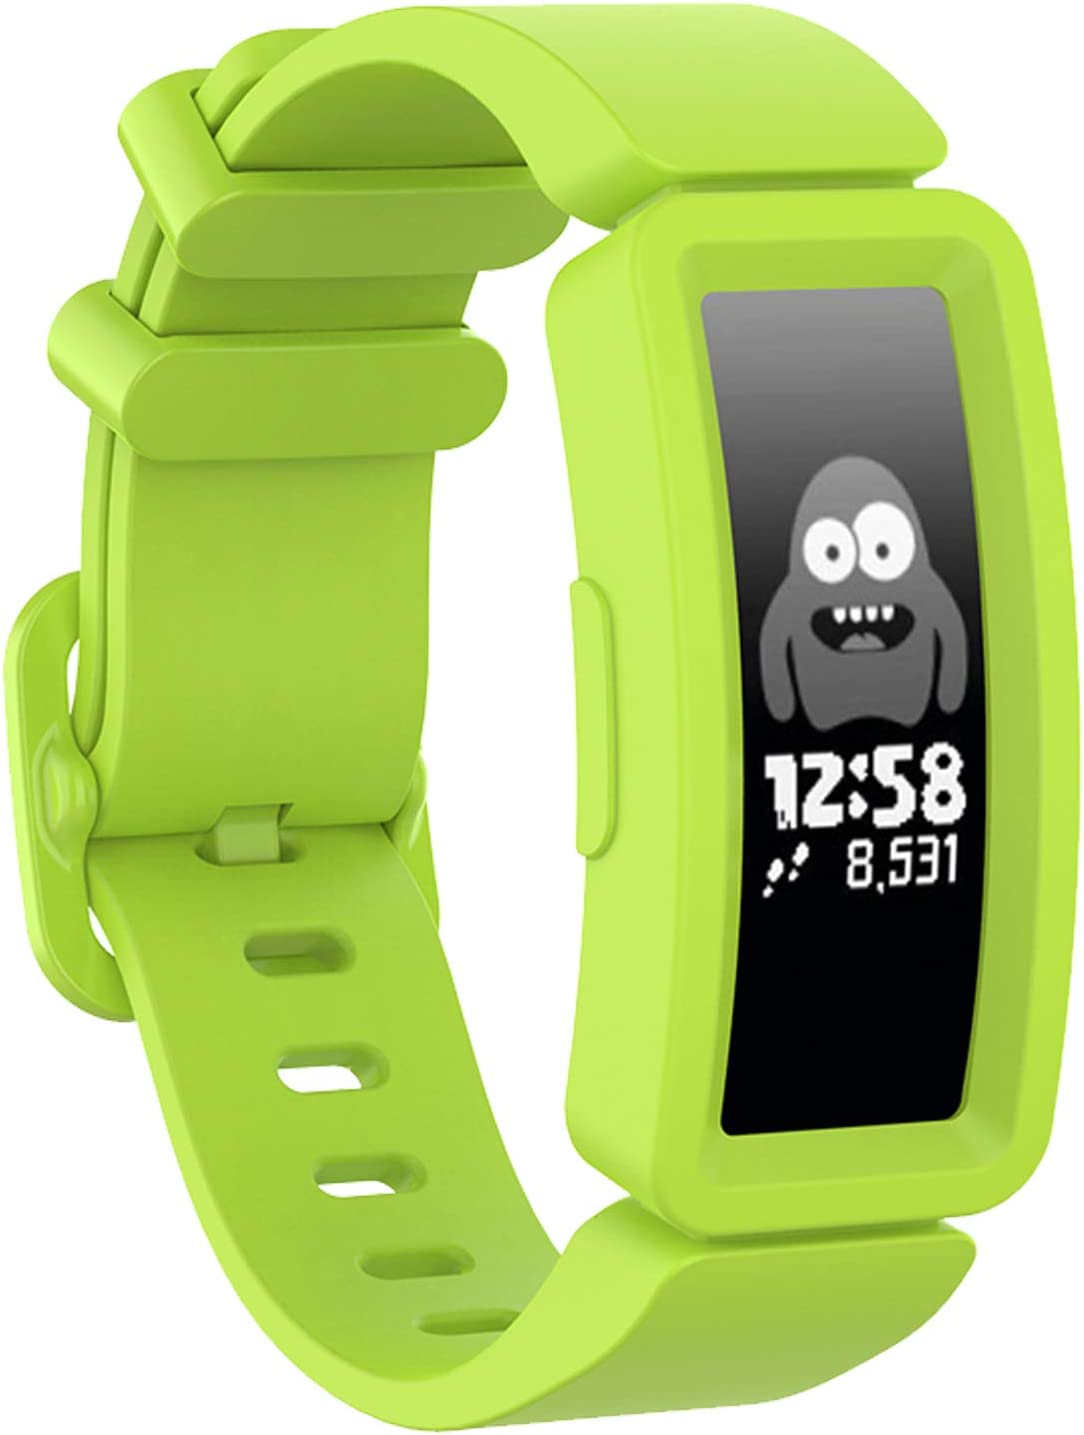 SPOBIT Bands Compatible with Fitbit Ace 2 Kids 6+, TPU Silicone Bracelet Accessories Sport Strap Wristbands Replacement for Fitbit Inspire HR & Ace 2 Boys Girls Lime